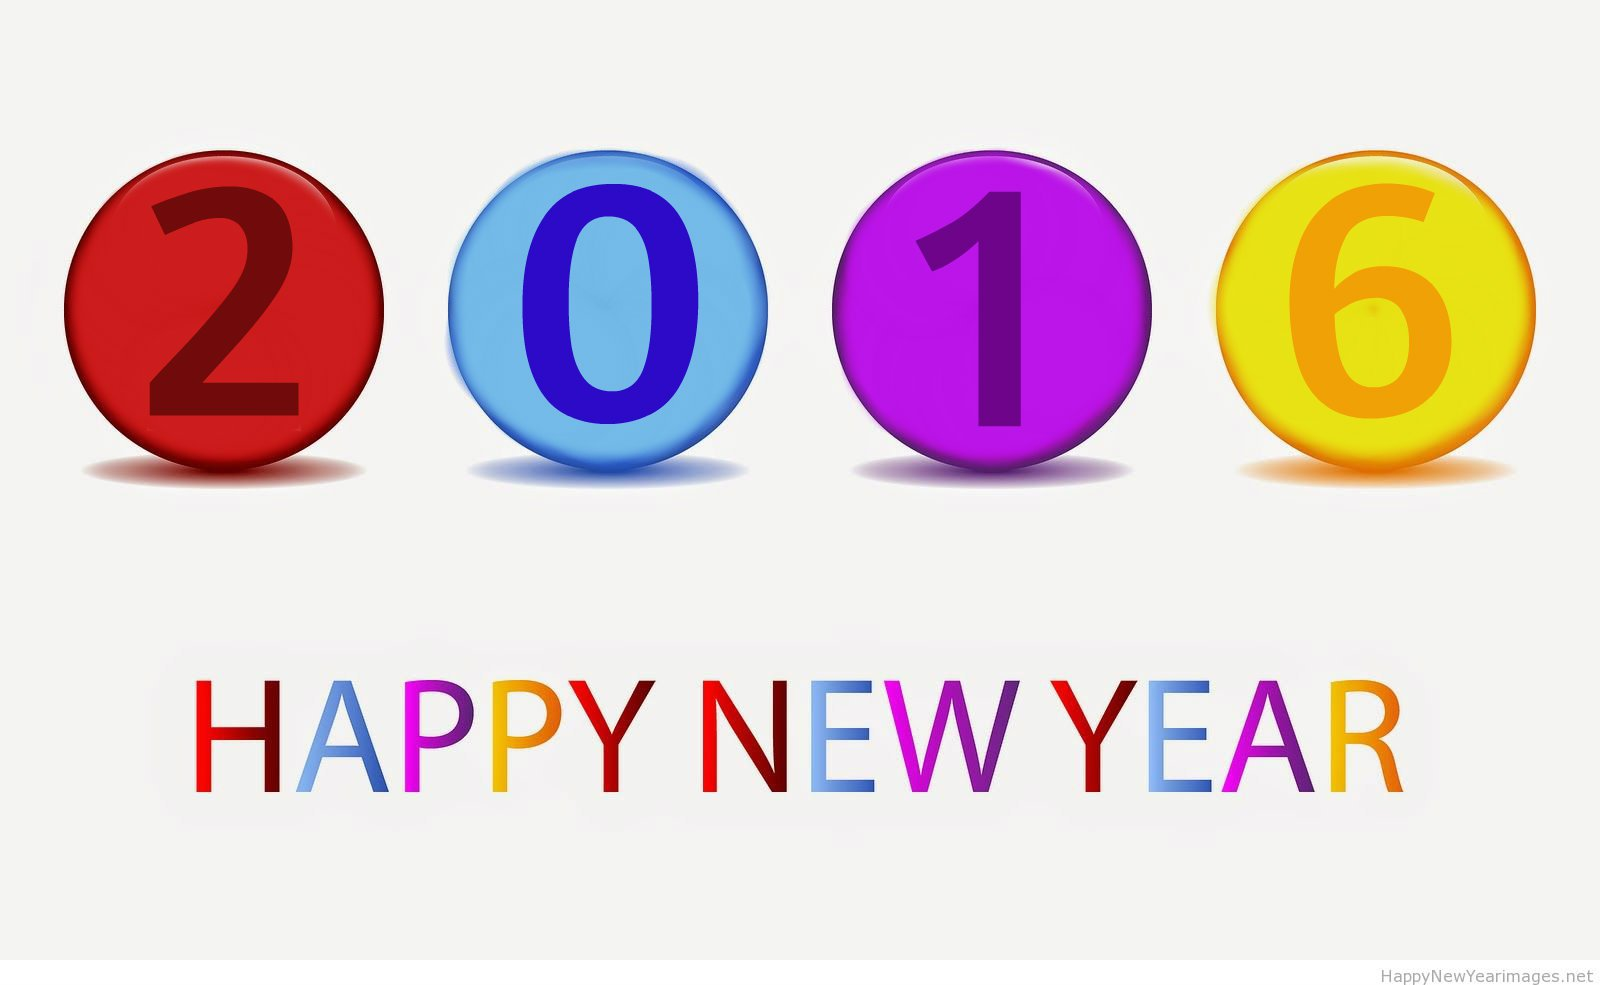 Small clipart happy new year Year new 1 TechBeasts 1